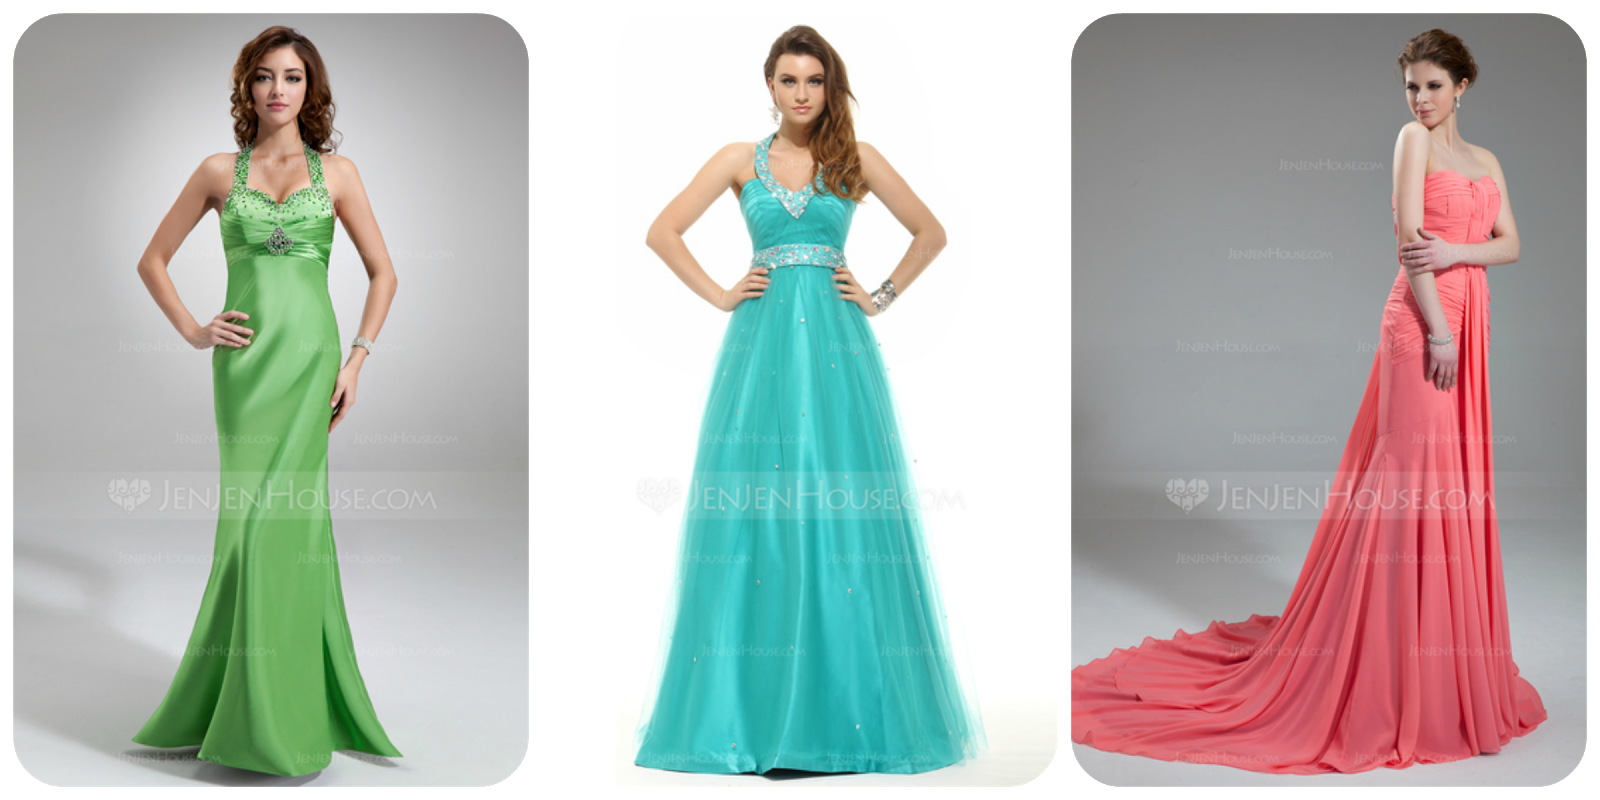 Places To Find Prom Dresses Near Me - Plus Size Prom Dresses